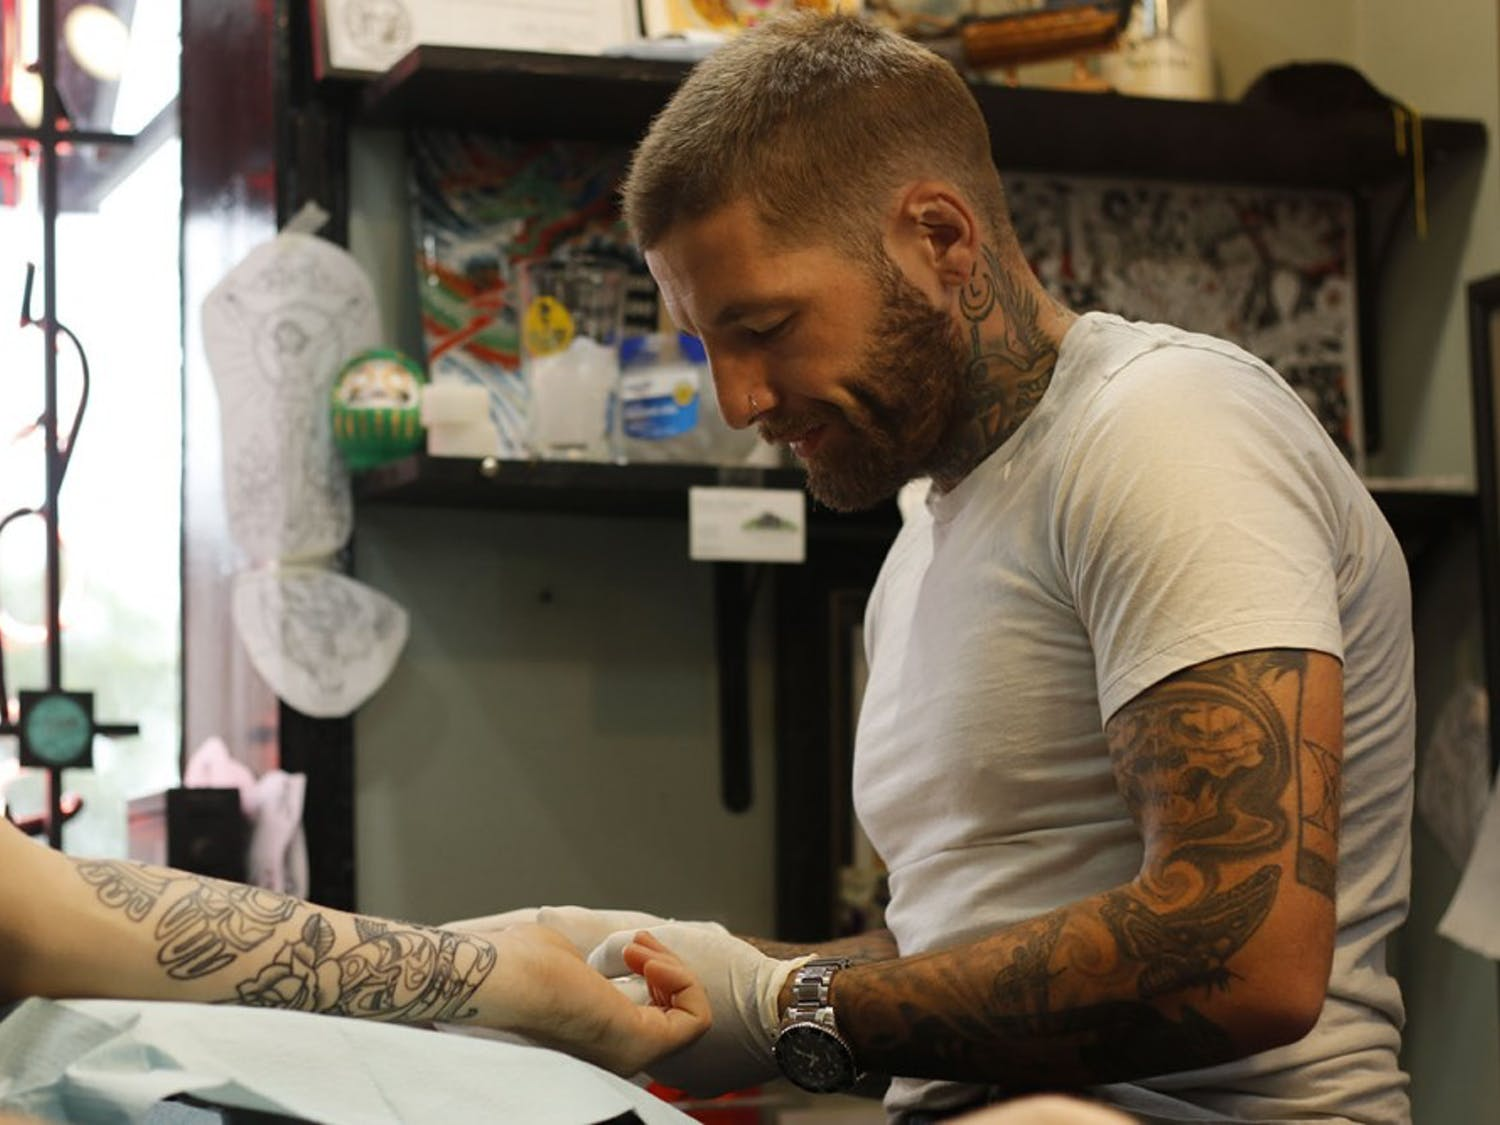 Mike Wheeler prepares Hayden Fitzgerald's arm before shading in his tattoo.